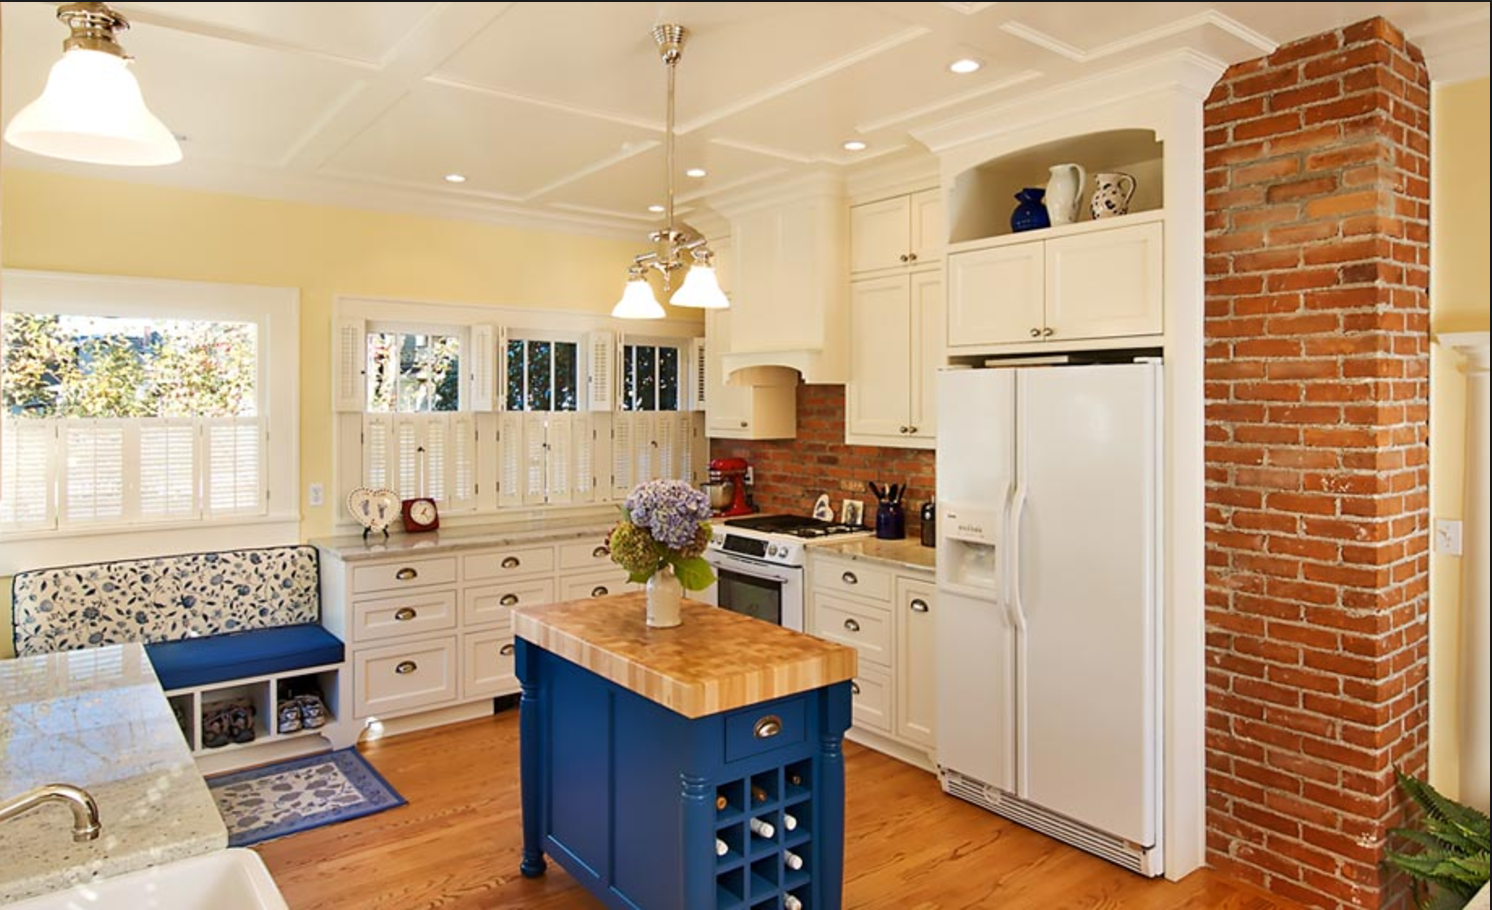 Exposed brick from old chimney in kitchen | Cape Cod Kitchen Remodel on kitchen renovation ideas, remodeled kitchen cabinets, remodeled kitchen americana, small kitchen design ideas, remodeled kitchens with islands, counter top kitchen ideas, skylight kitchen ideas, double oven kitchen ideas, remodeling your kitchen ideas, microwave kitchen ideas, wood floors kitchen ideas, small kitchen remodeling ideas, remodeled contemporary kitchen, diy kitchen remodel ideas, historic kitchen ideas, spacious kitchen ideas, basic kitchen remodel ideas, pantry kitchen ideas, traditional kitchen design ideas, 2014 kitchen remodeling ideas,